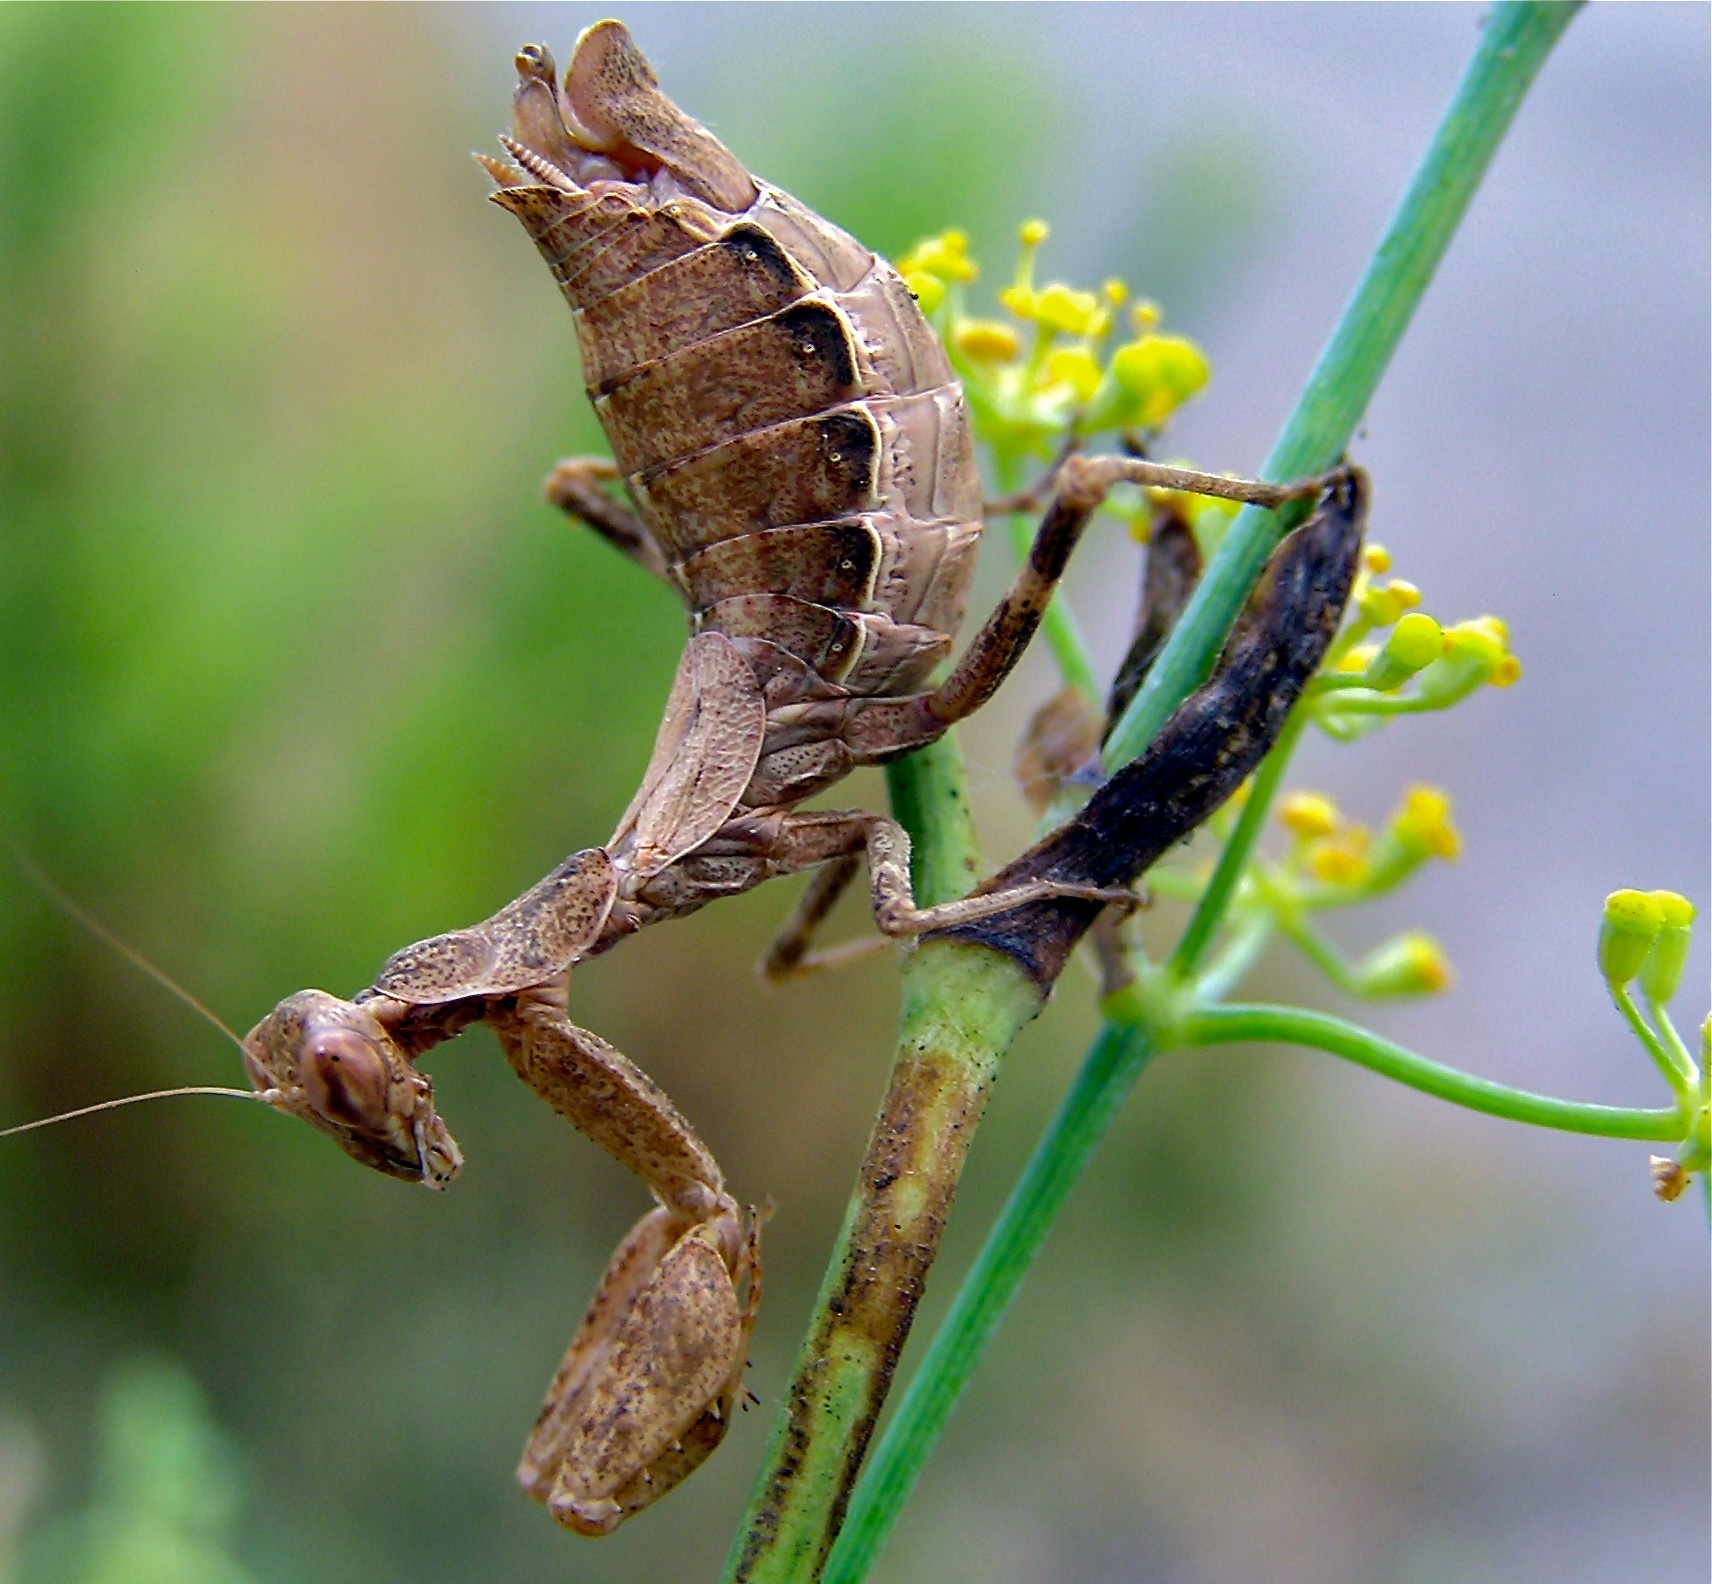 Image of European dwarf mantis